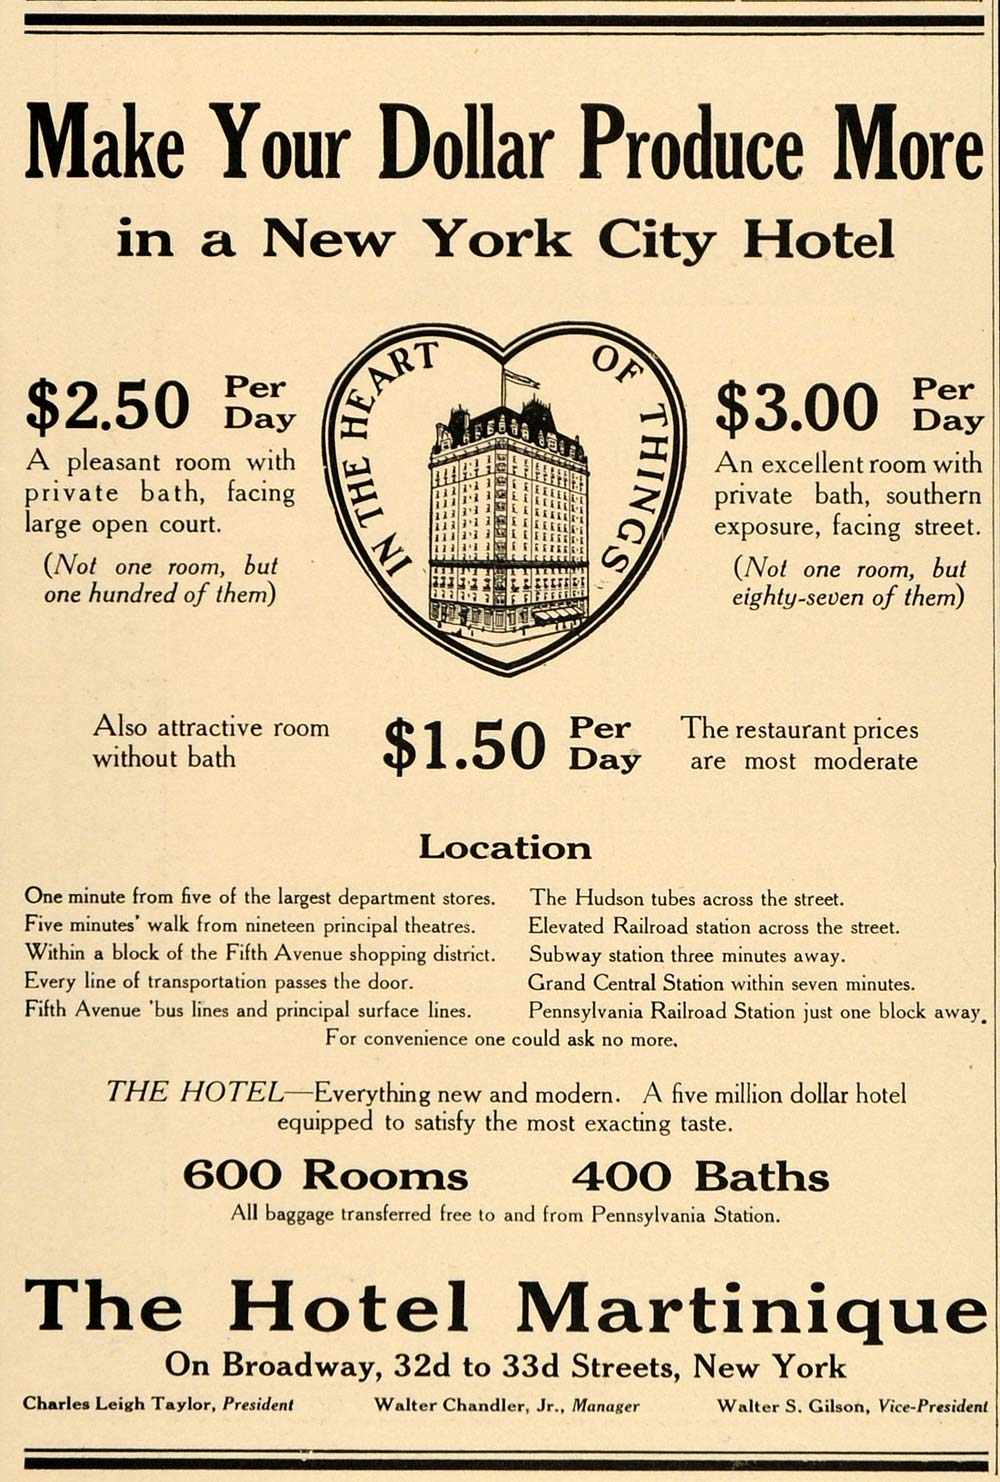 1915 Vintage Ad Hotel Martinique Broadway New York City - ORIGINAL SA1B